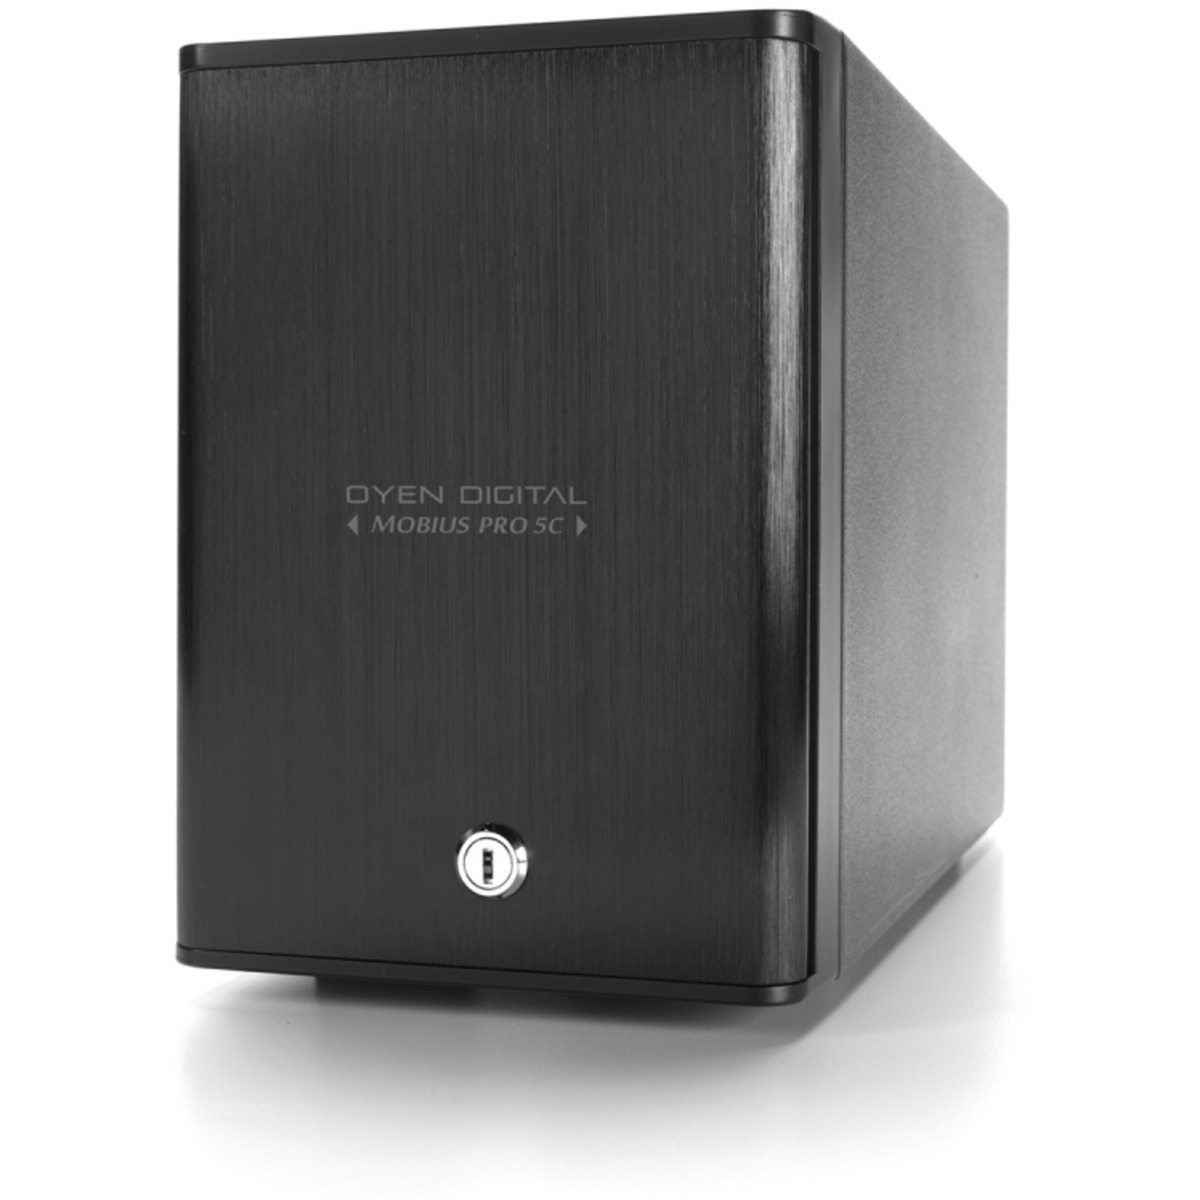 buy $1079 OYEN Mobius Pro 5C 5-Bay USB-C Non-RAID 30tb Desktop DAS - Direct Attached Storage Device 5x6000gb Western Digital Blue WD60EZRZ 3.5 5400rpm SATA 6Gb/s HDD CONSUMER Class Drives Installed - Burn-In Tested - nas headquarters buy network attached storage server device das new sale raid-5 free shipping usa Mobius Pro 5C 5-Bay USB-C Non-RAID